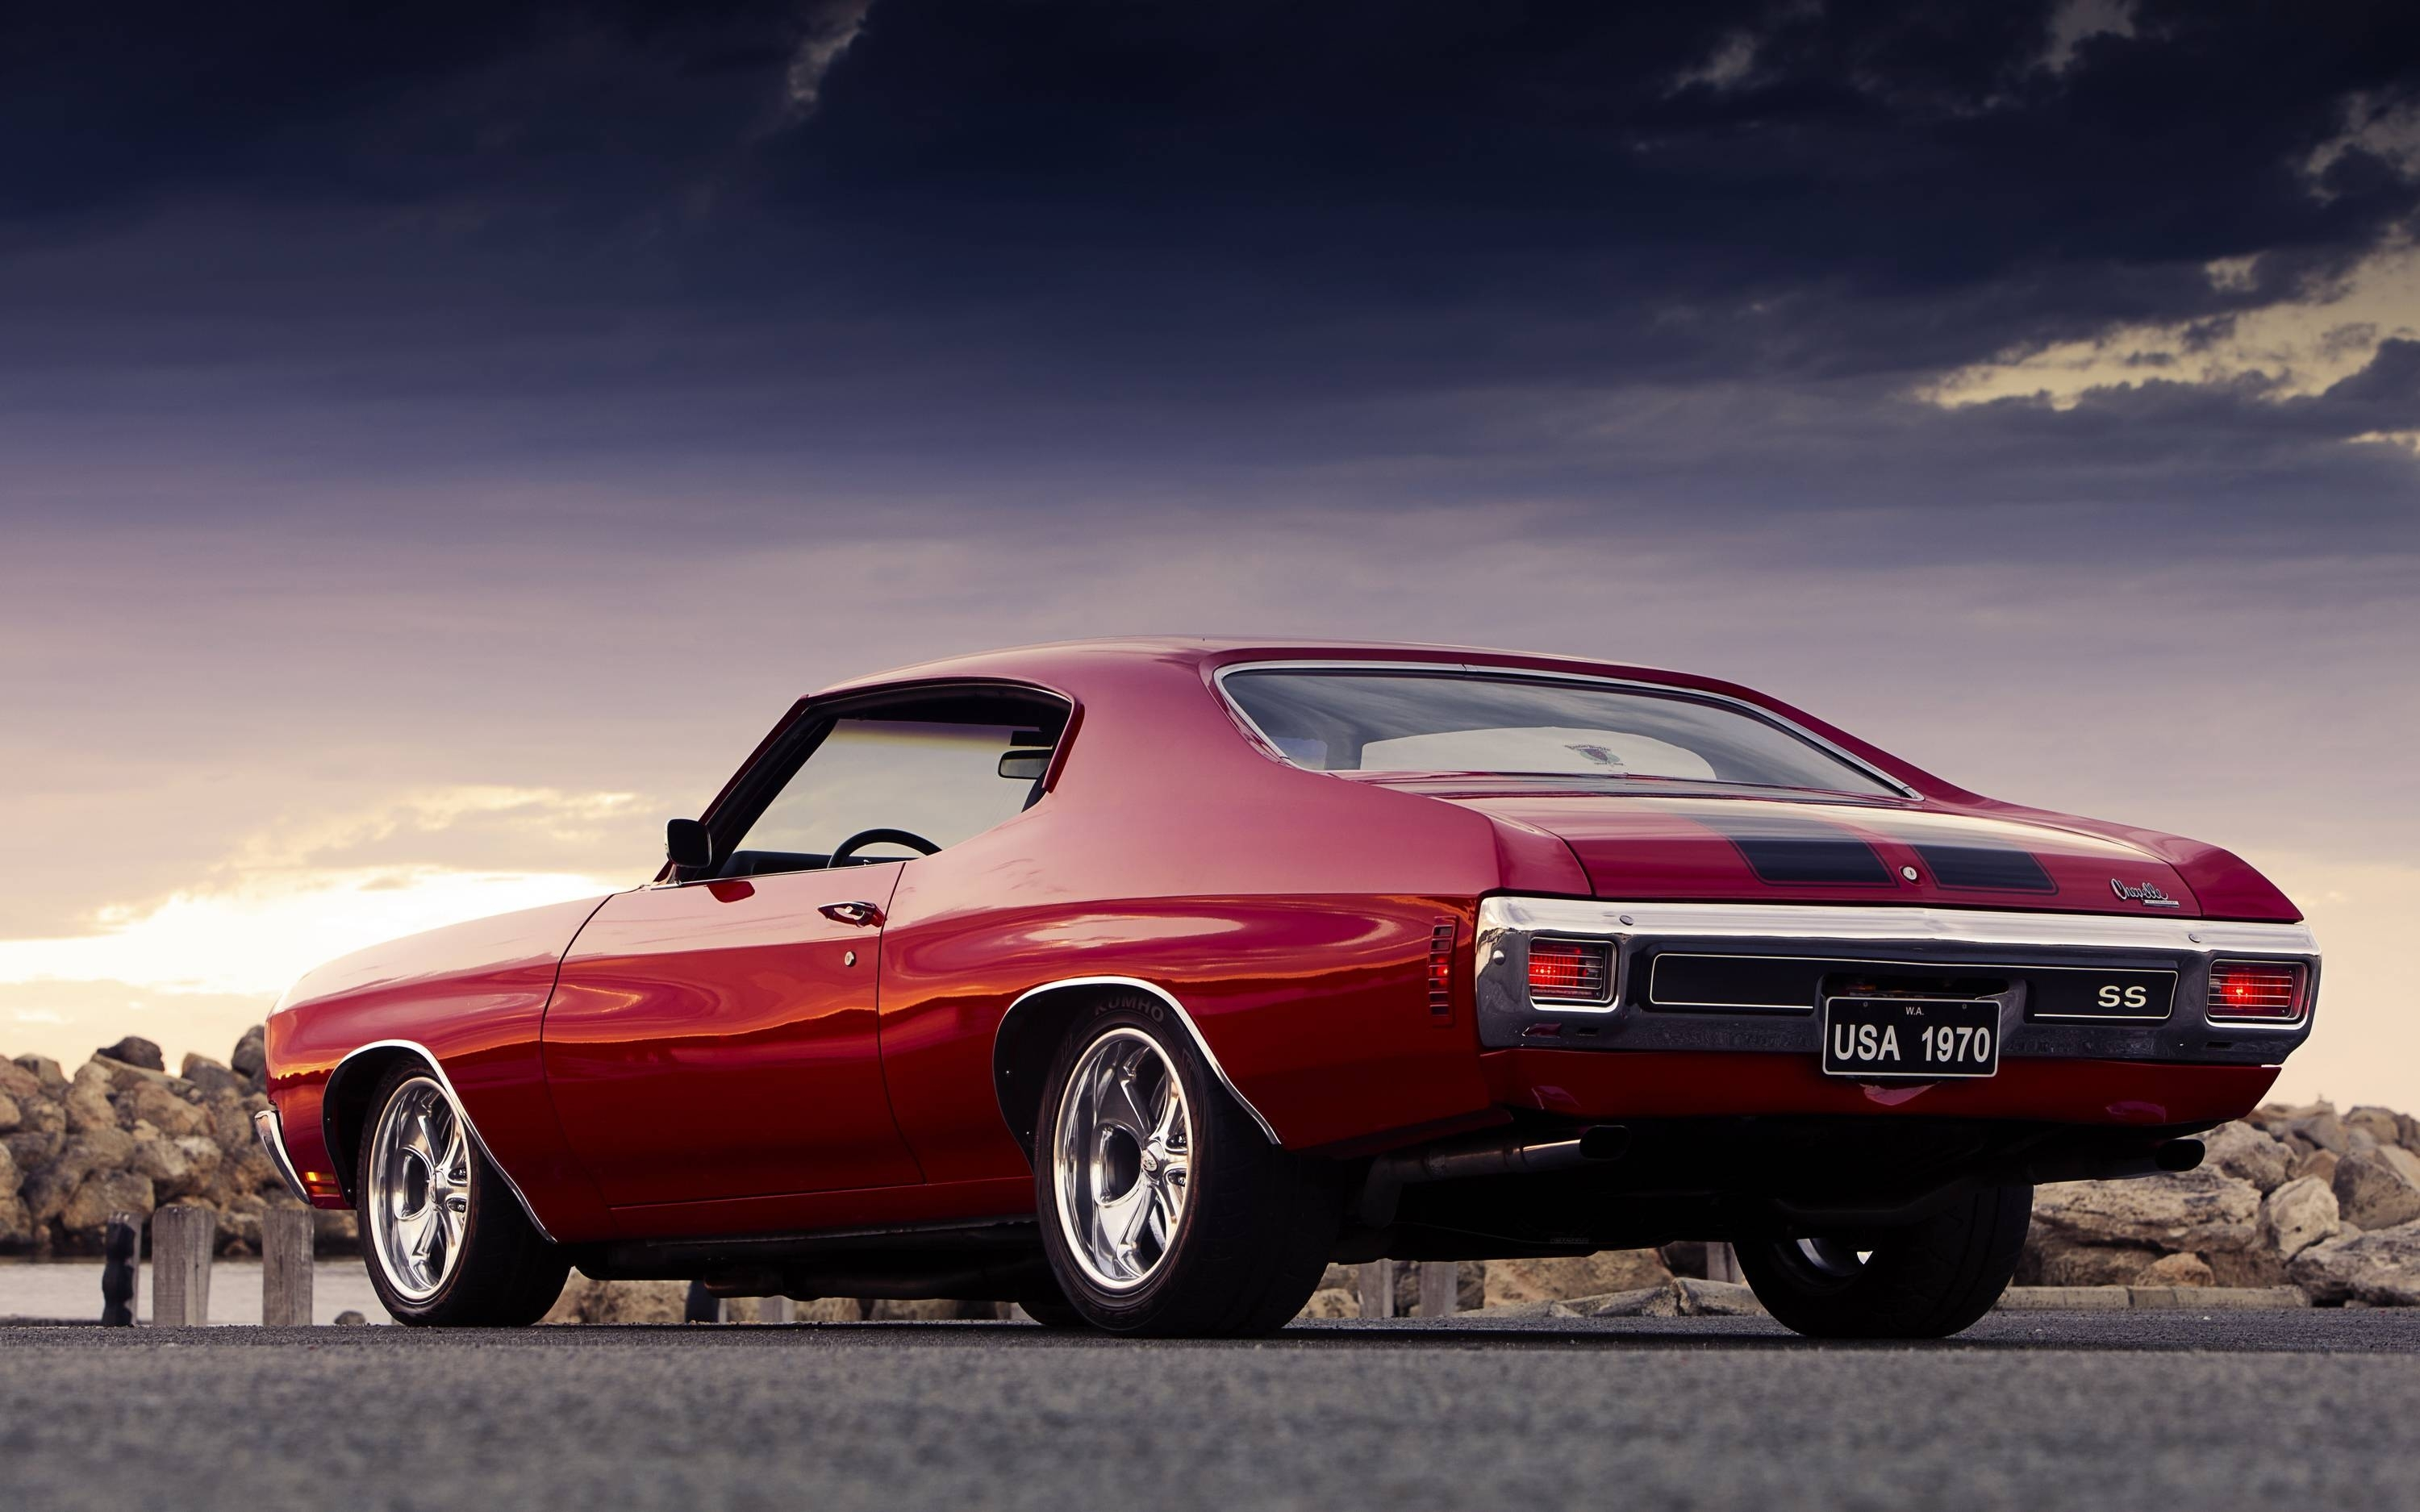 10 Most Popular 1970 Chevelle Ss Wallpaper FULL HD 1920×1080 For PC Background